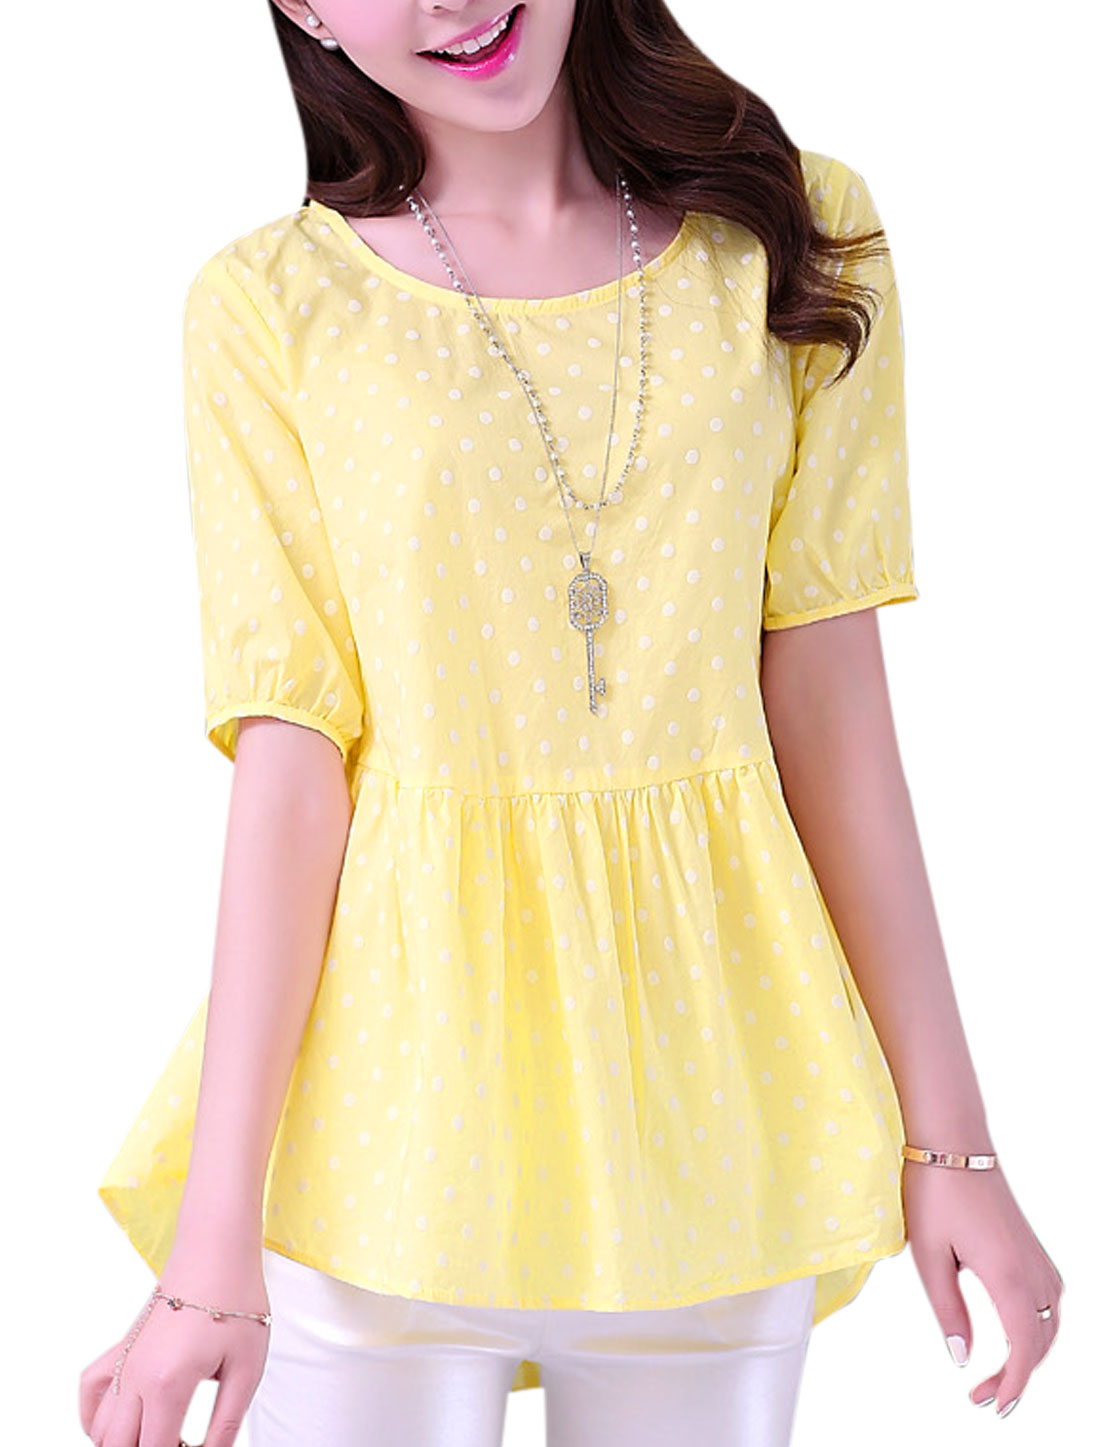 Motherhood Dots Pattern Self Tie String One Button Back Leisure Peplum Top Light Yellow M